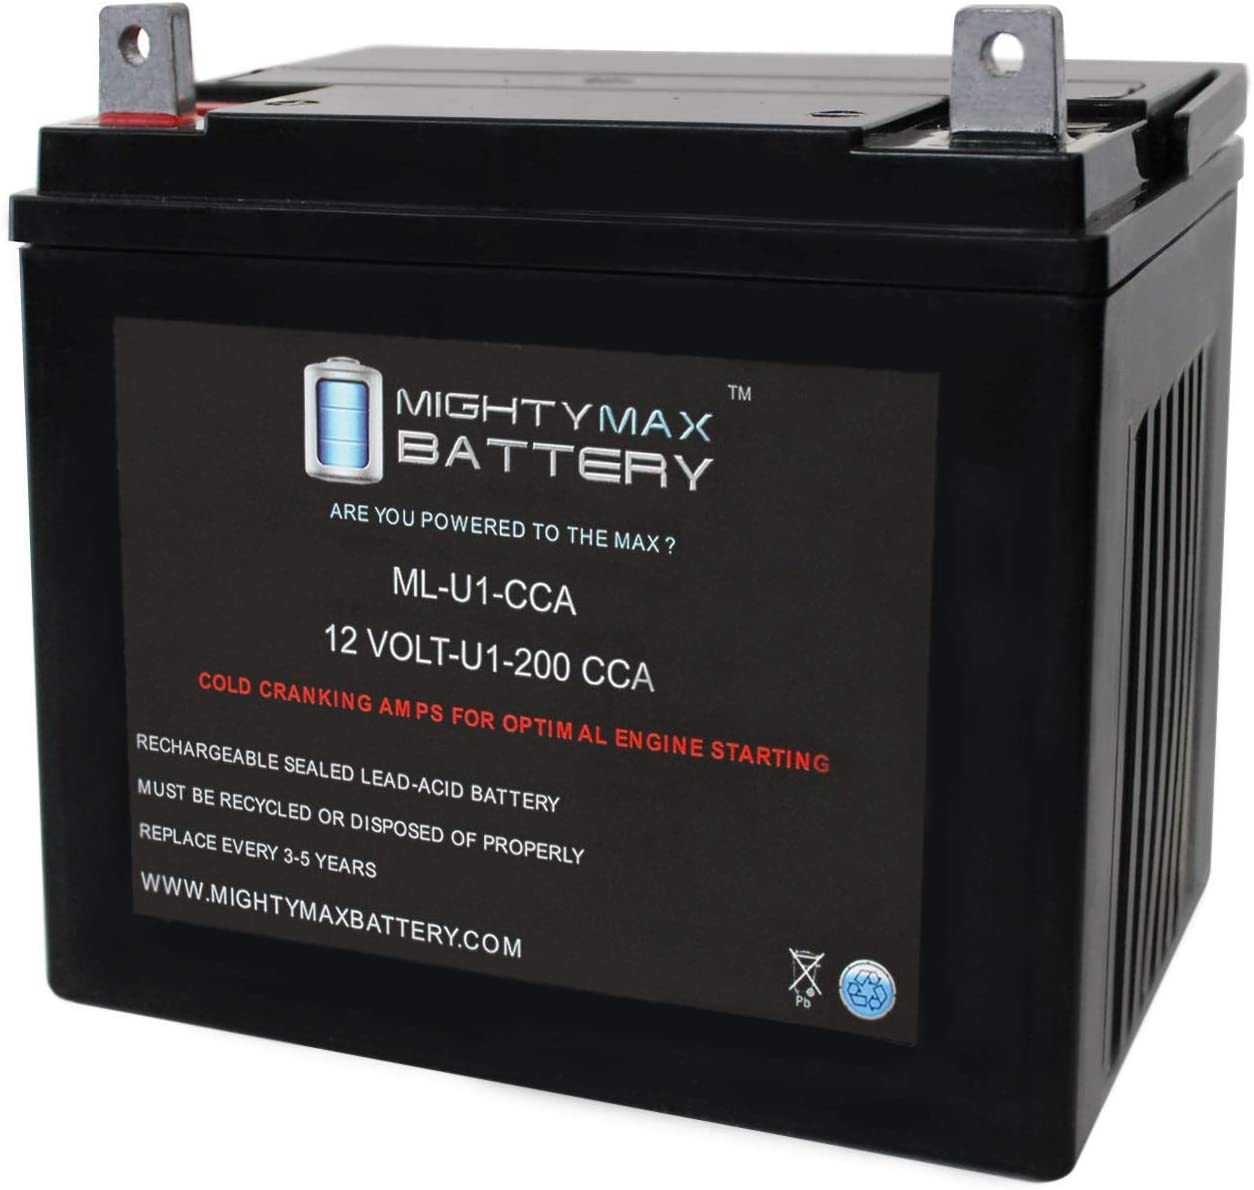 Mighty Max Battery ML-U1 12V 200CCA Battery for Toro 310-8 Lawn Tractor and Mower Brand Product